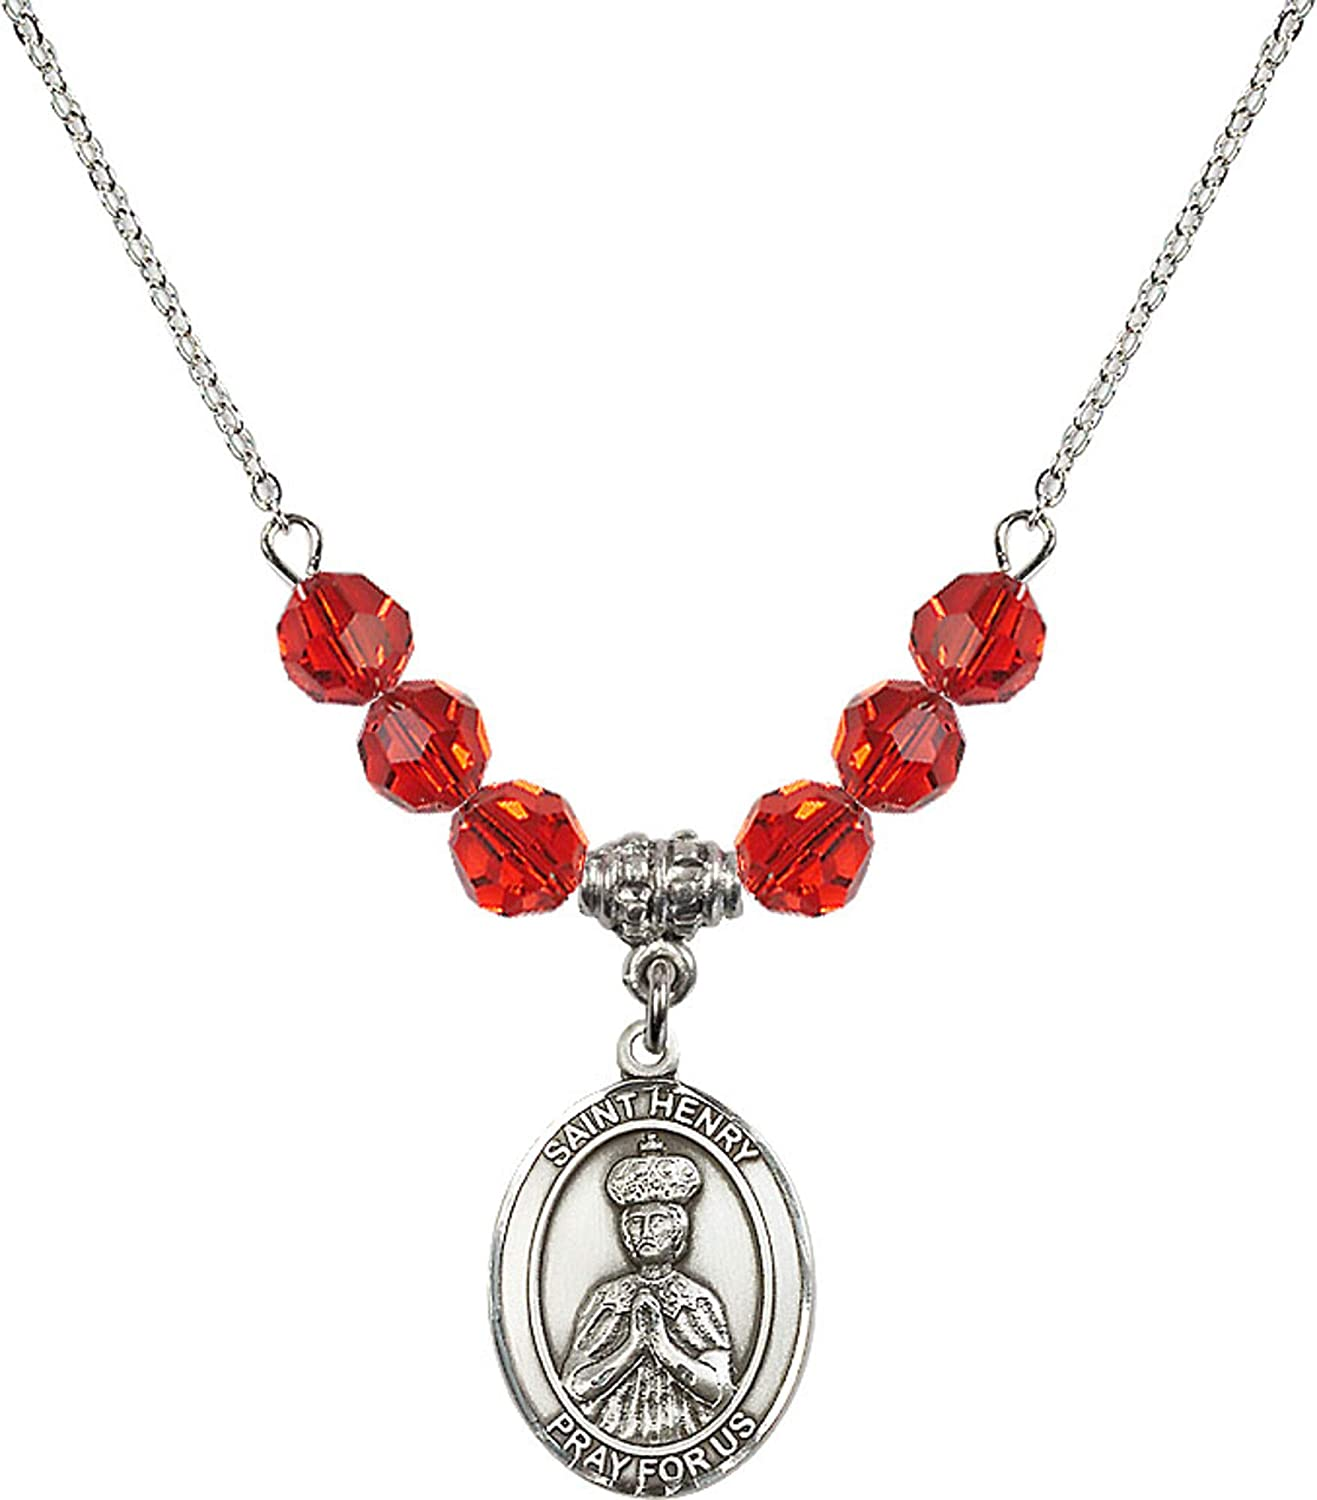 Bonyak Jewelry 18 Inch Rhodium Plated Necklace w// 6mm Red July Birth Month Stone Beads and Saint Henry II Charm